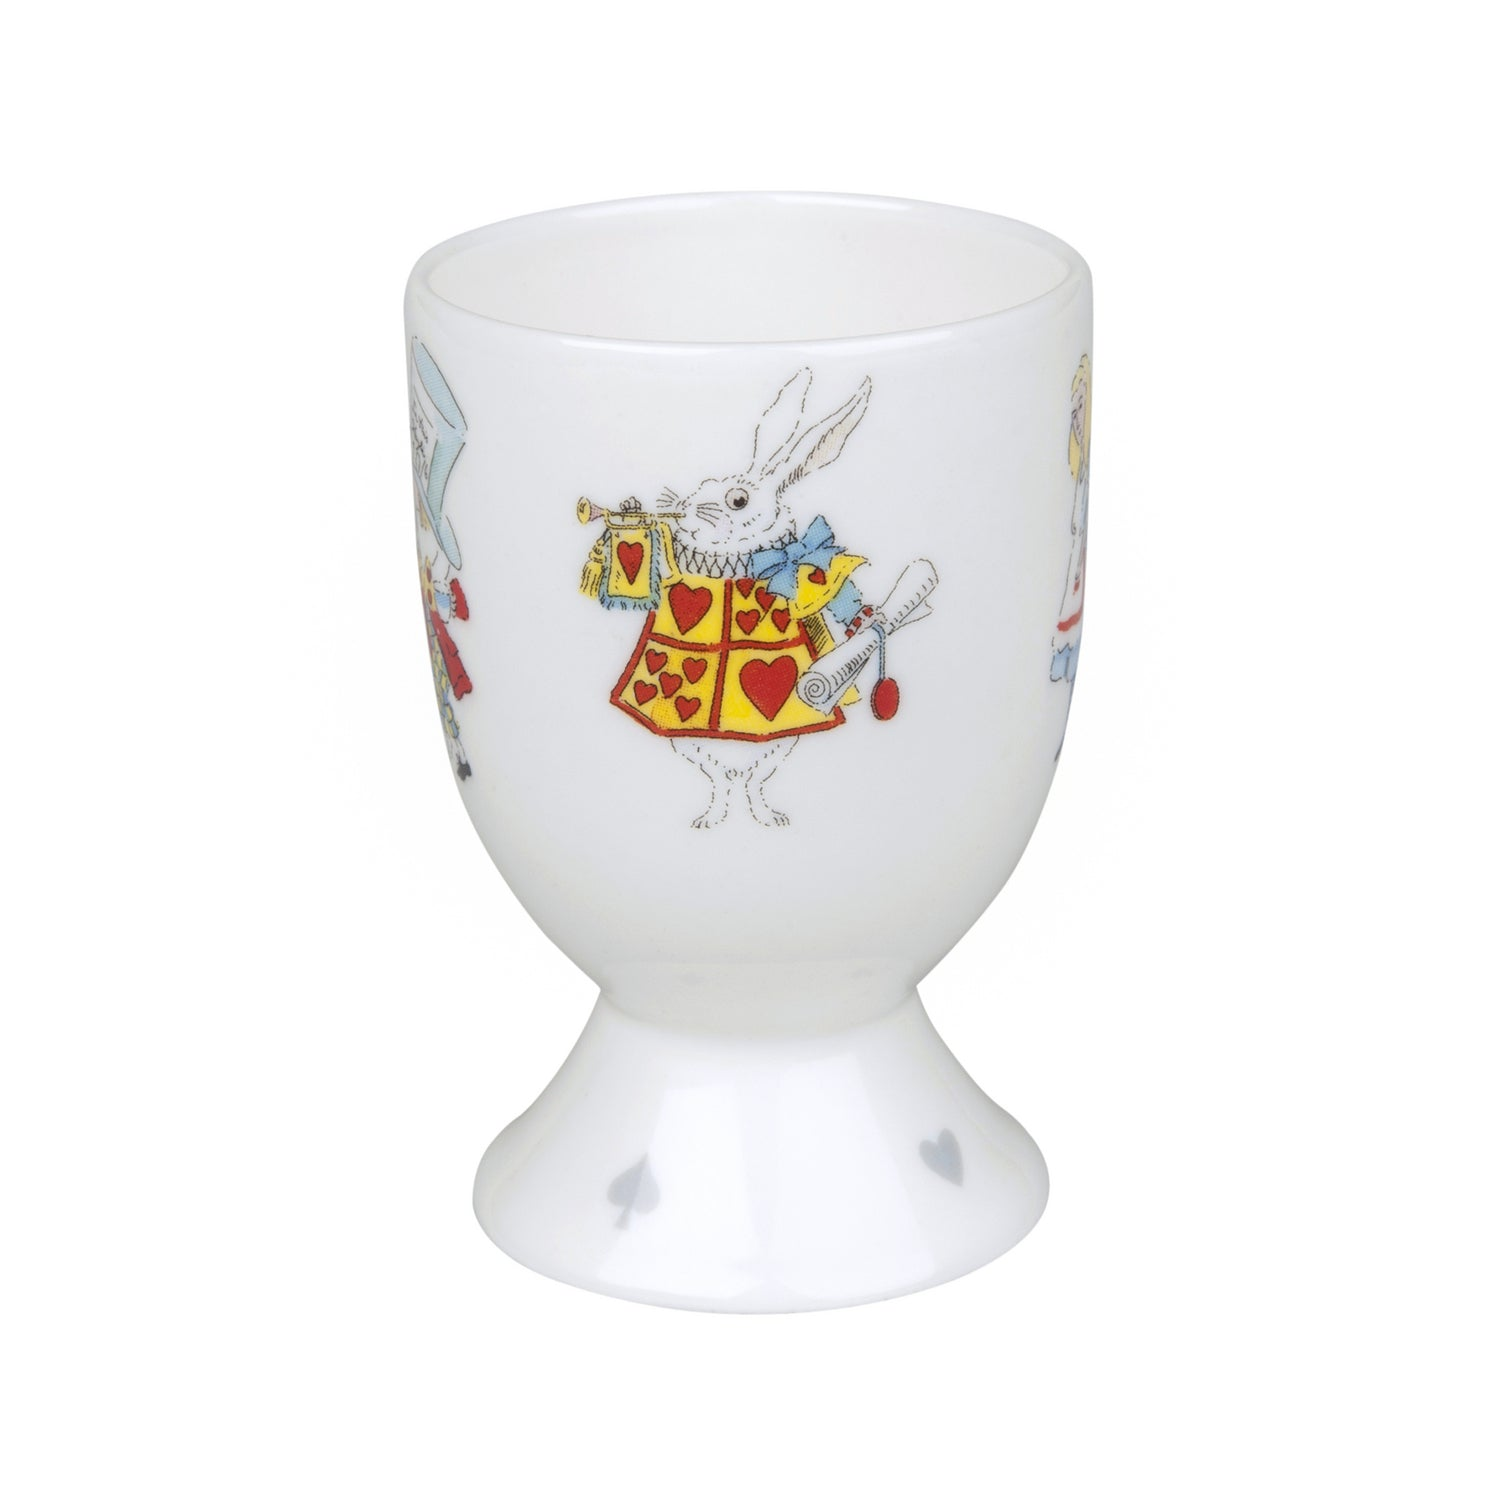 Alice in Wonderland Egg Cup